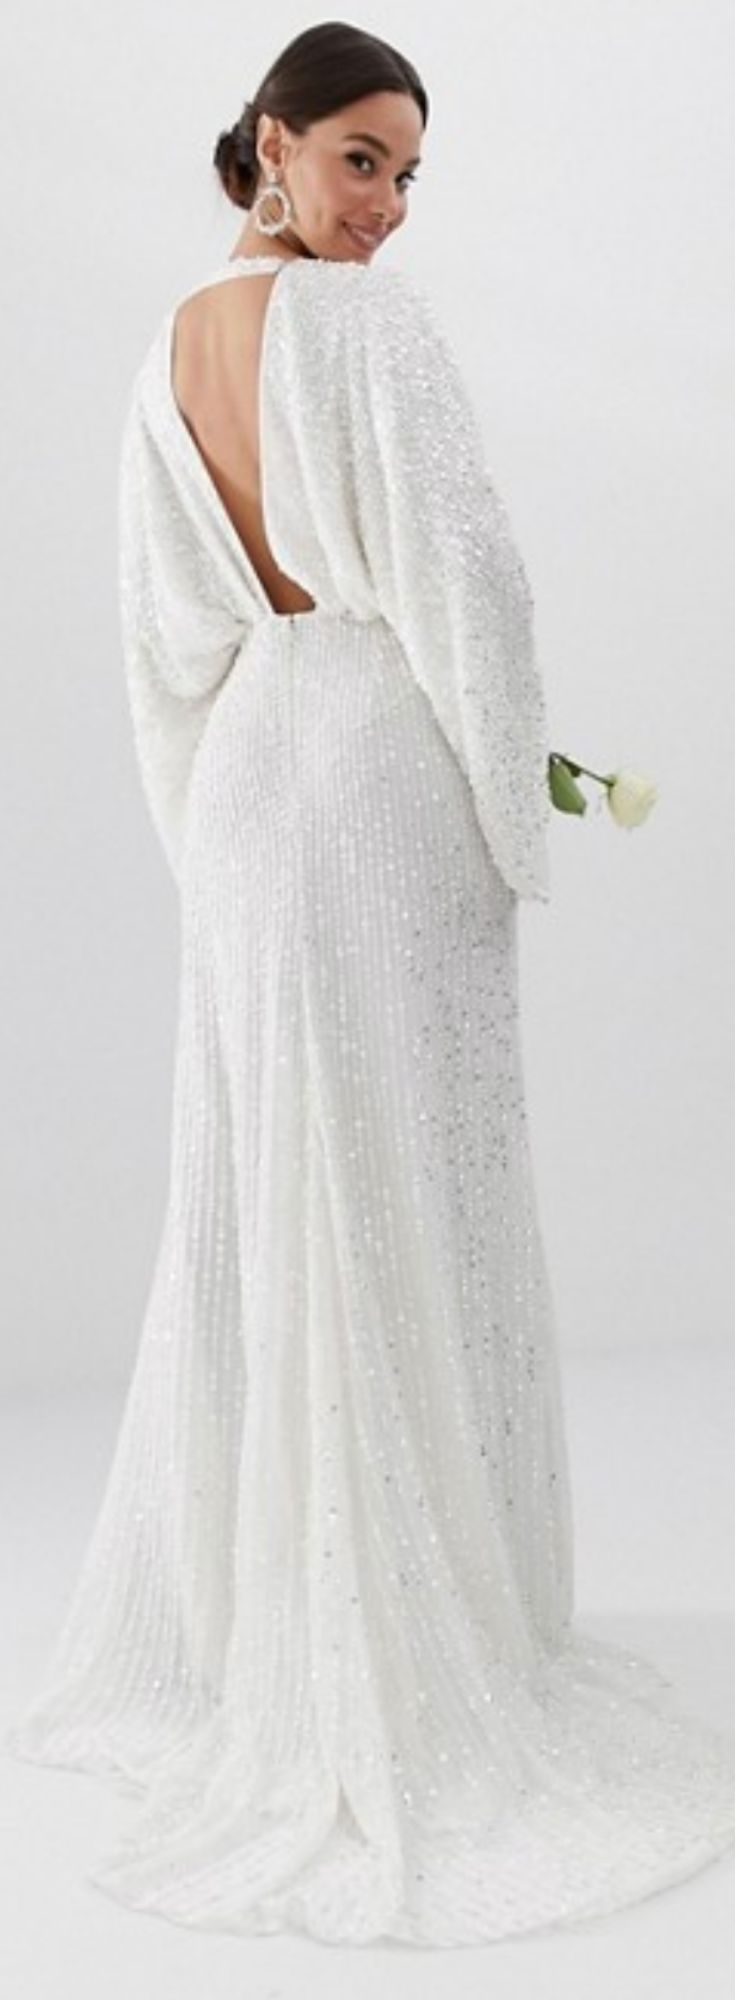 e10cc1af6d54 20 Cheap Affordable Bridal Gowns and Wedding Dresses   ASOS Edition Sequin  Kimono Sleeve Wedding Dress   Open Back Deep V Wedding Dress